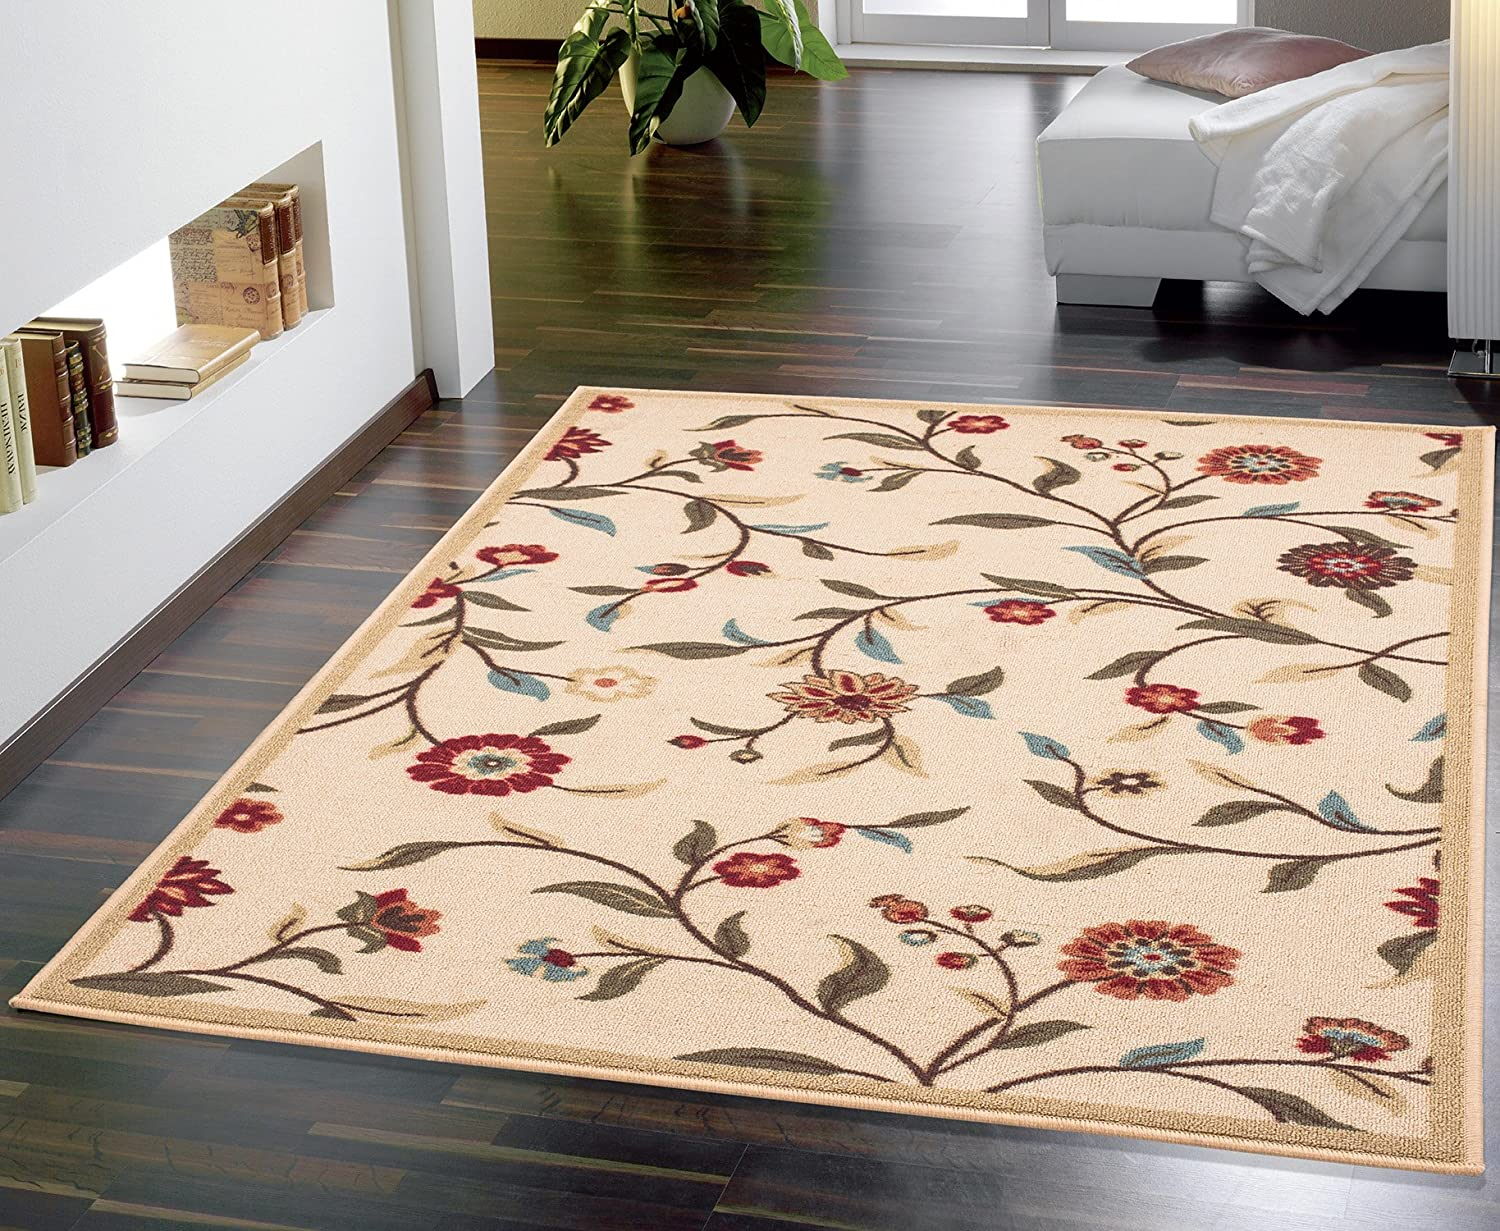 "Ottomanson Ottohome Collection Floral Garden Design Modern Area Rug with Non-Skid (Non-Slip) Rubber Backing, Beige, 3'3"" L x 5'0"" W"